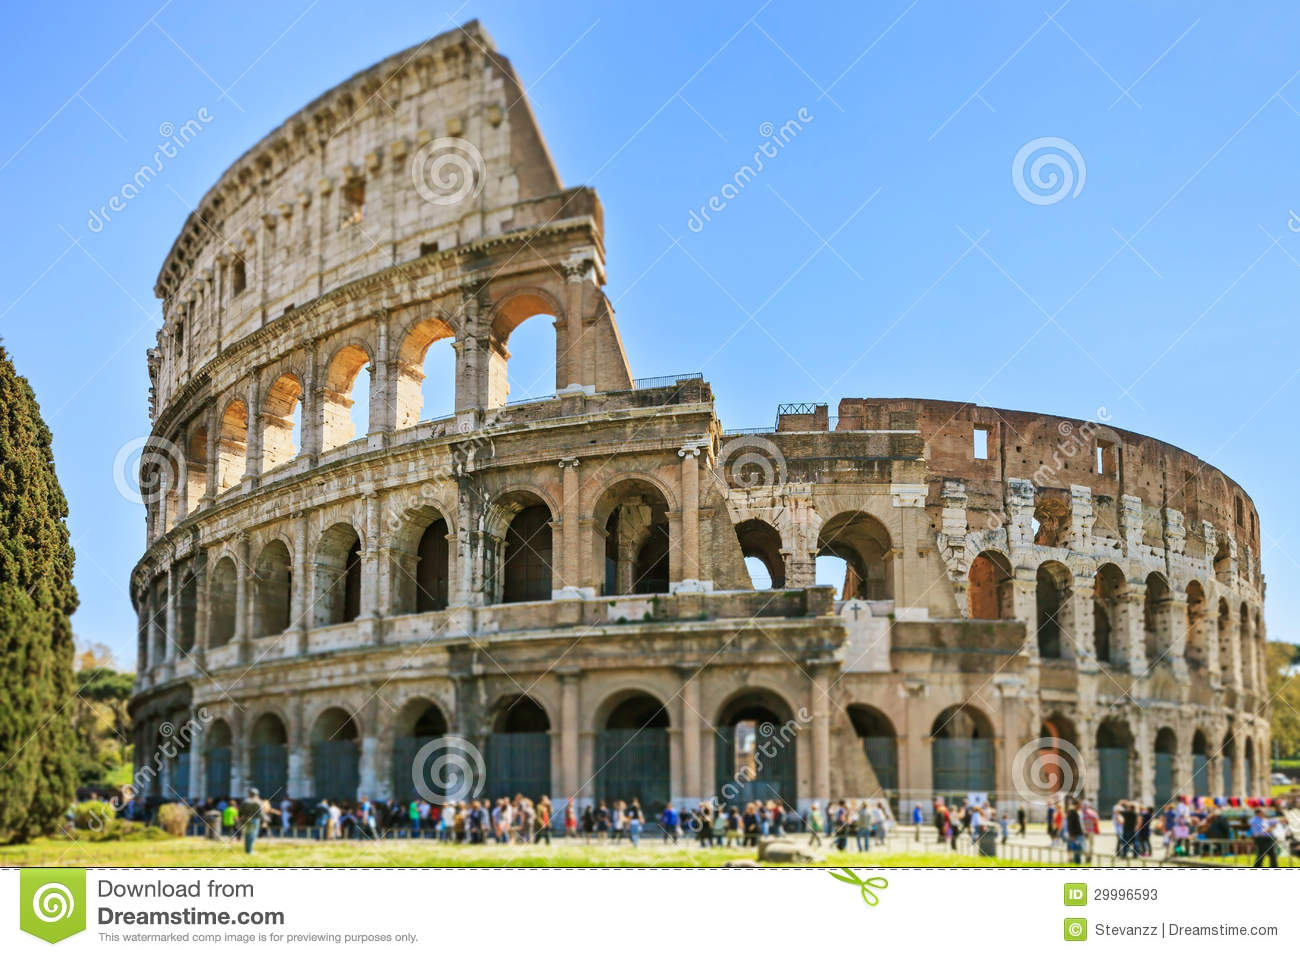 Roman Colosseum Architecture Landmark In A Tilt Shift Photography